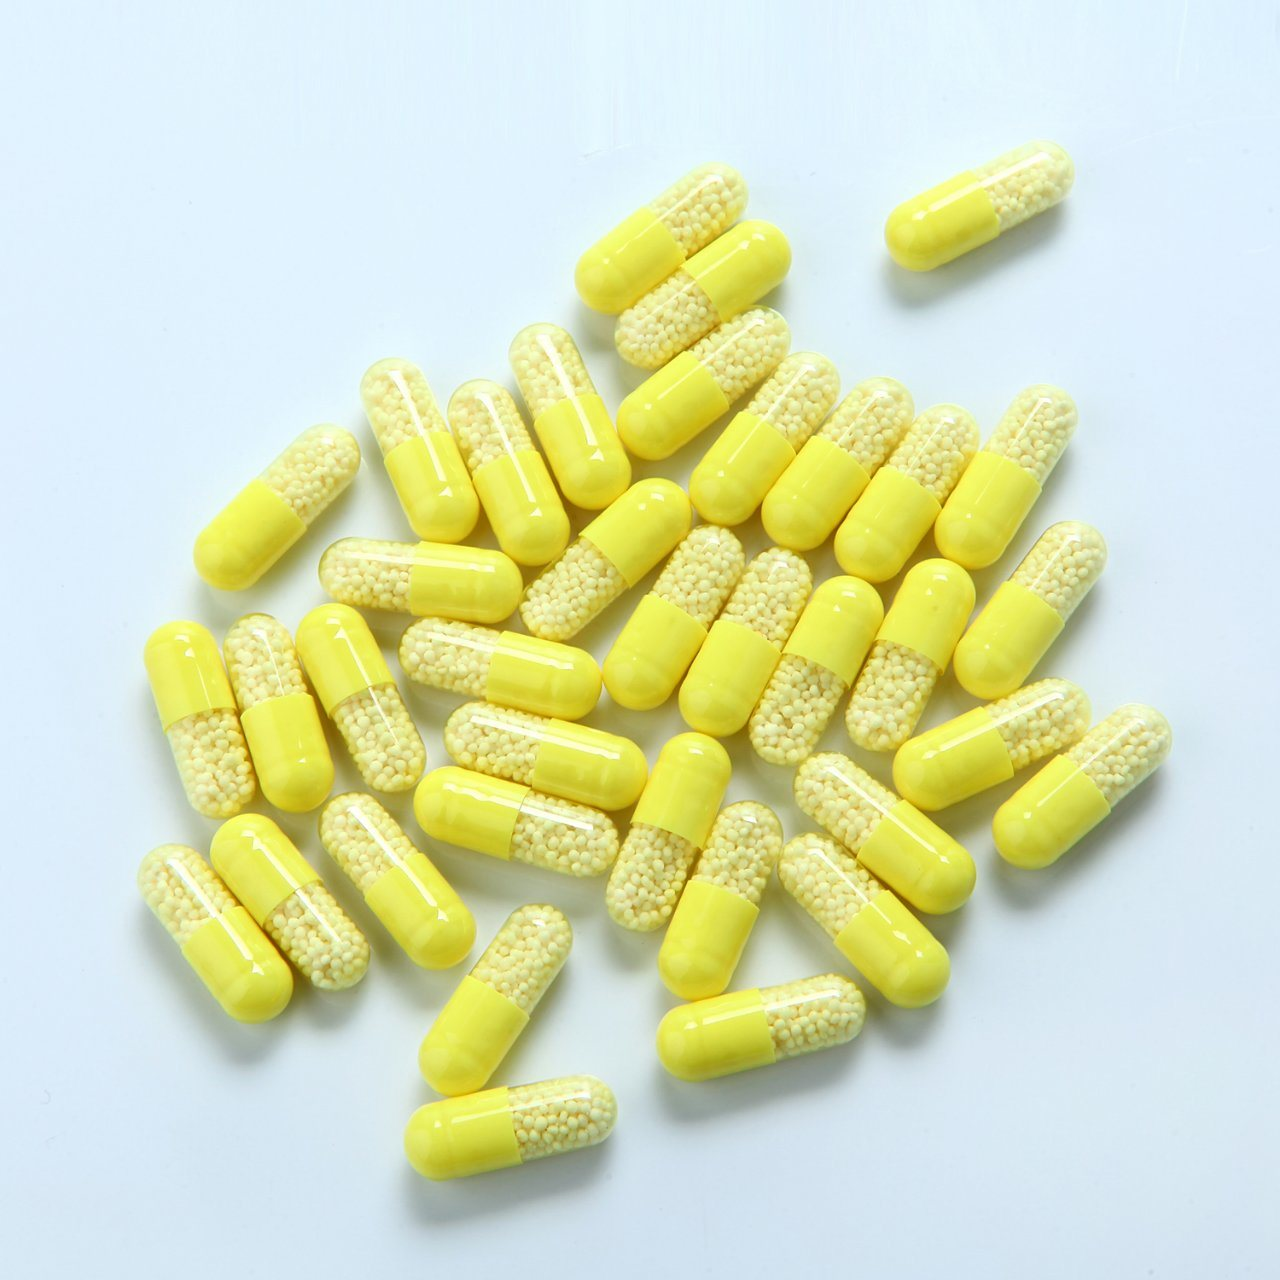 Zinc Citrate and Vitamin a Sustained-Release Capsules